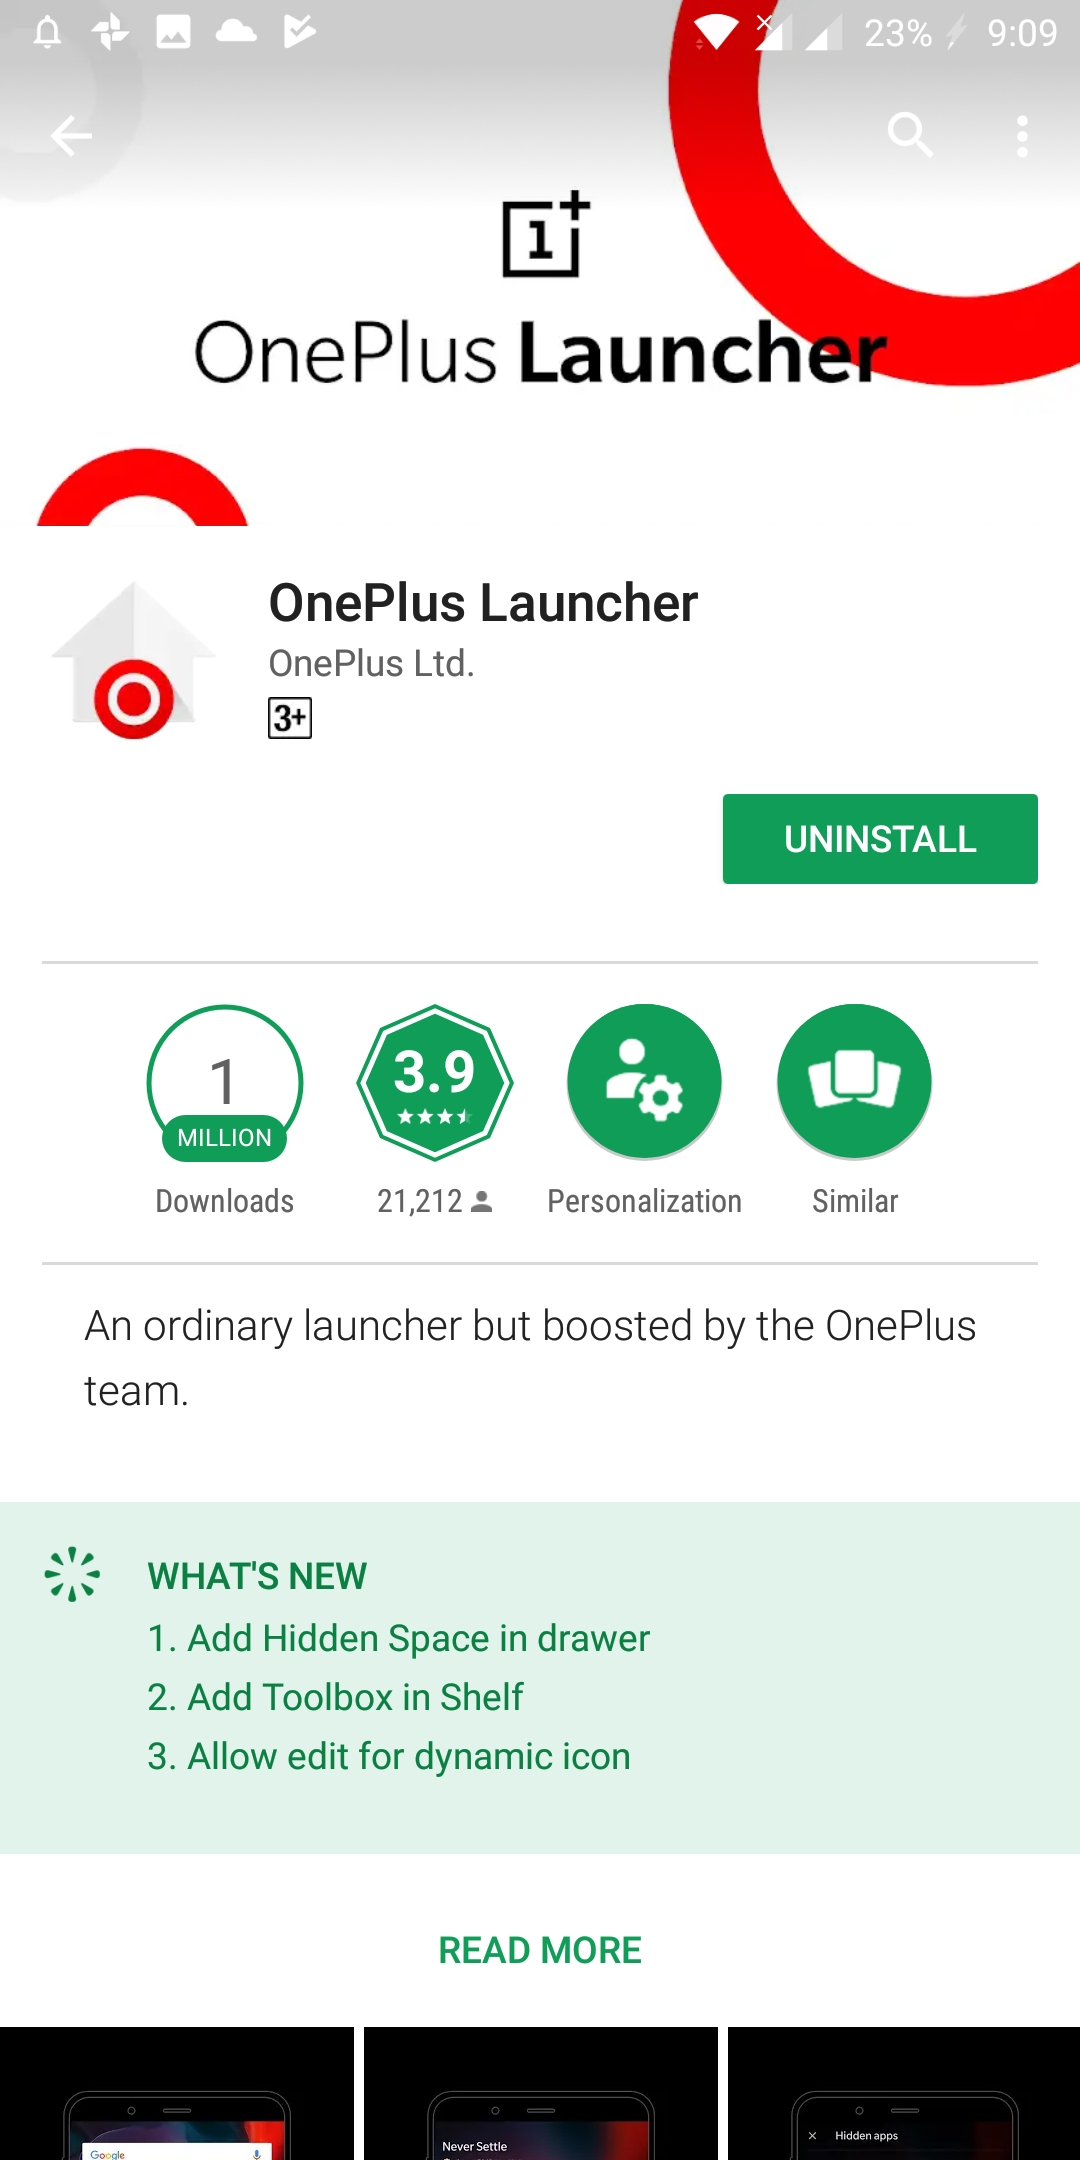 OnePlus Launcher Adds the ability to Hide Apps from the App Drawer